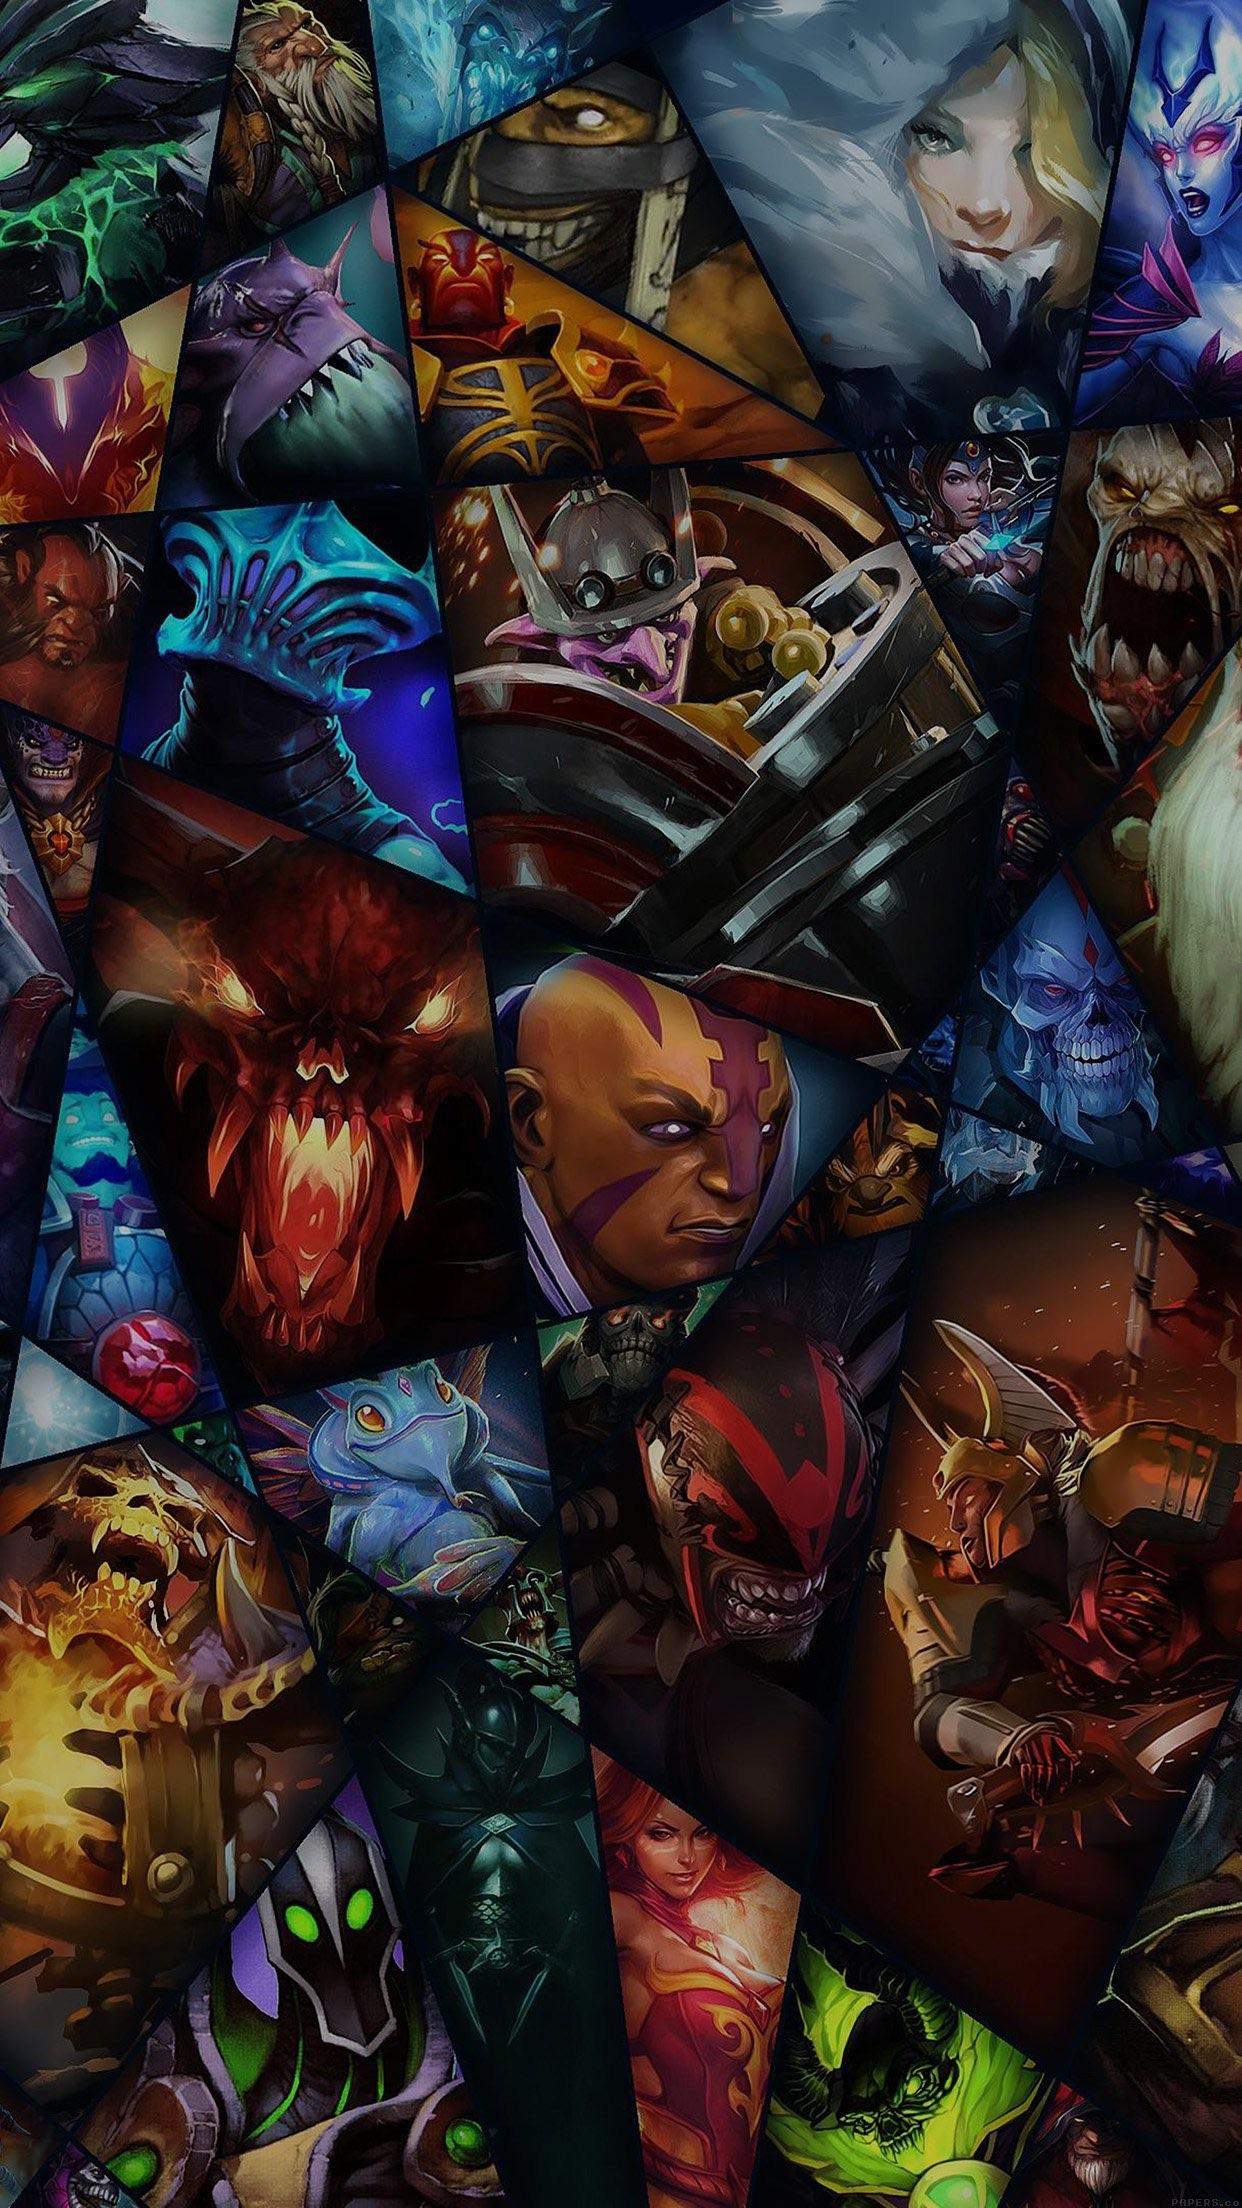 What S Your Dota Wallpaper For Your Phone - Dota 2 Wallpaper Hd Android - HD Wallpaper